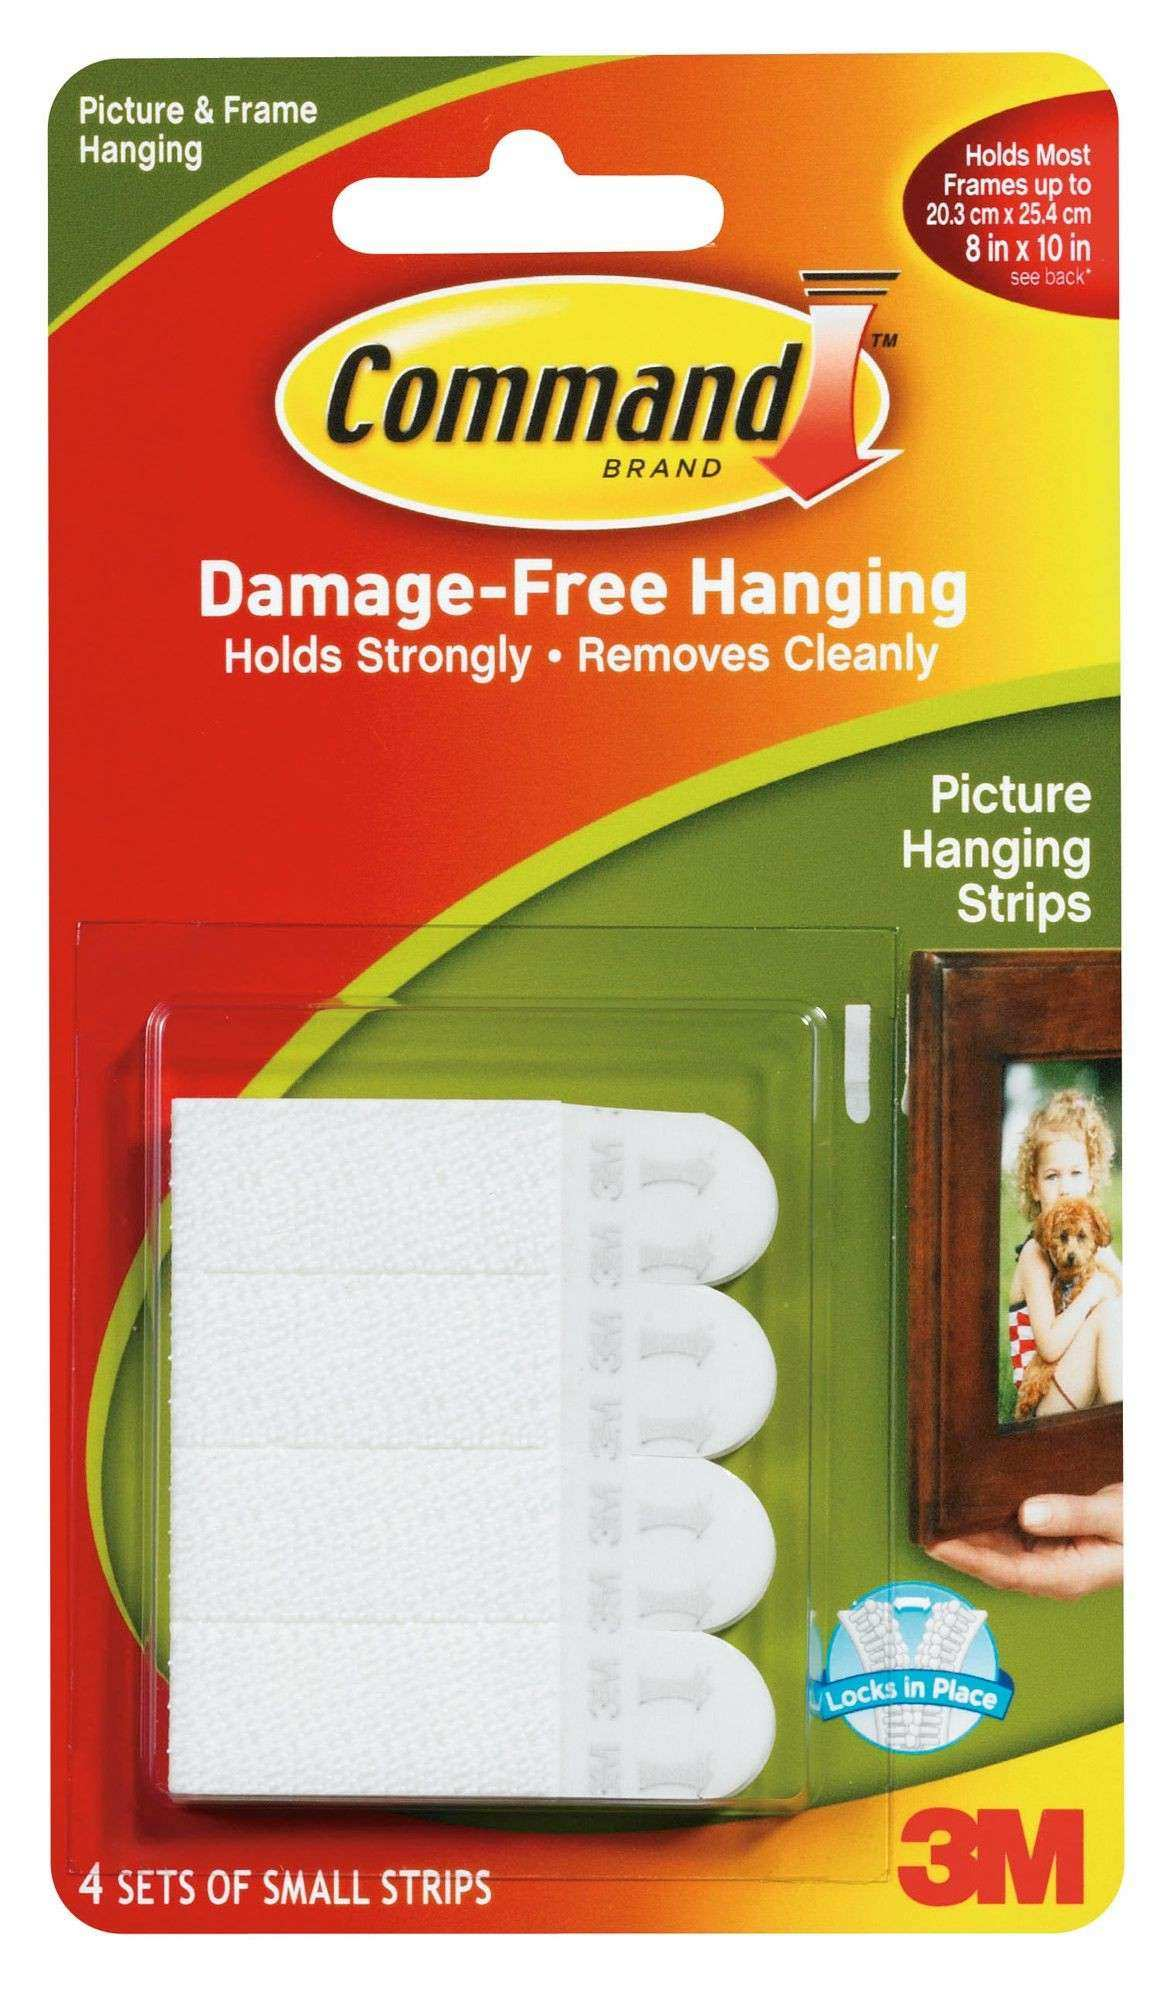 3M mand White Adhesive Picture Hanging Strip 4